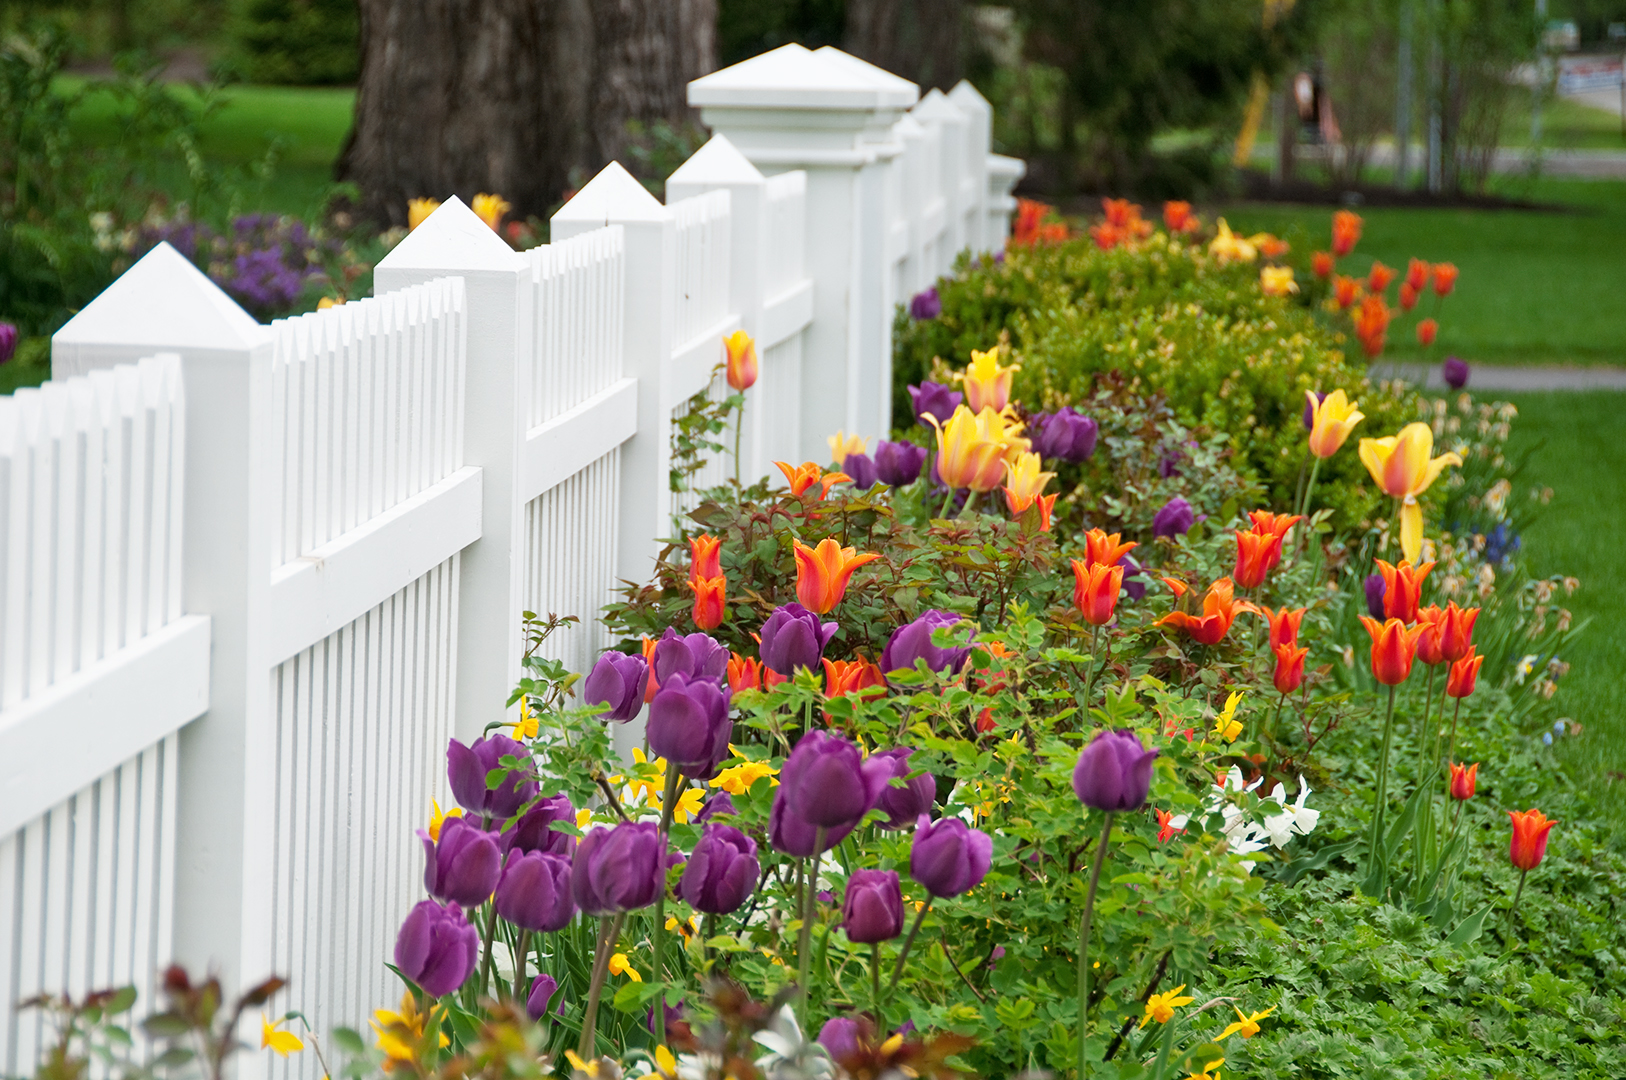 flowers growing next to a white picket fence